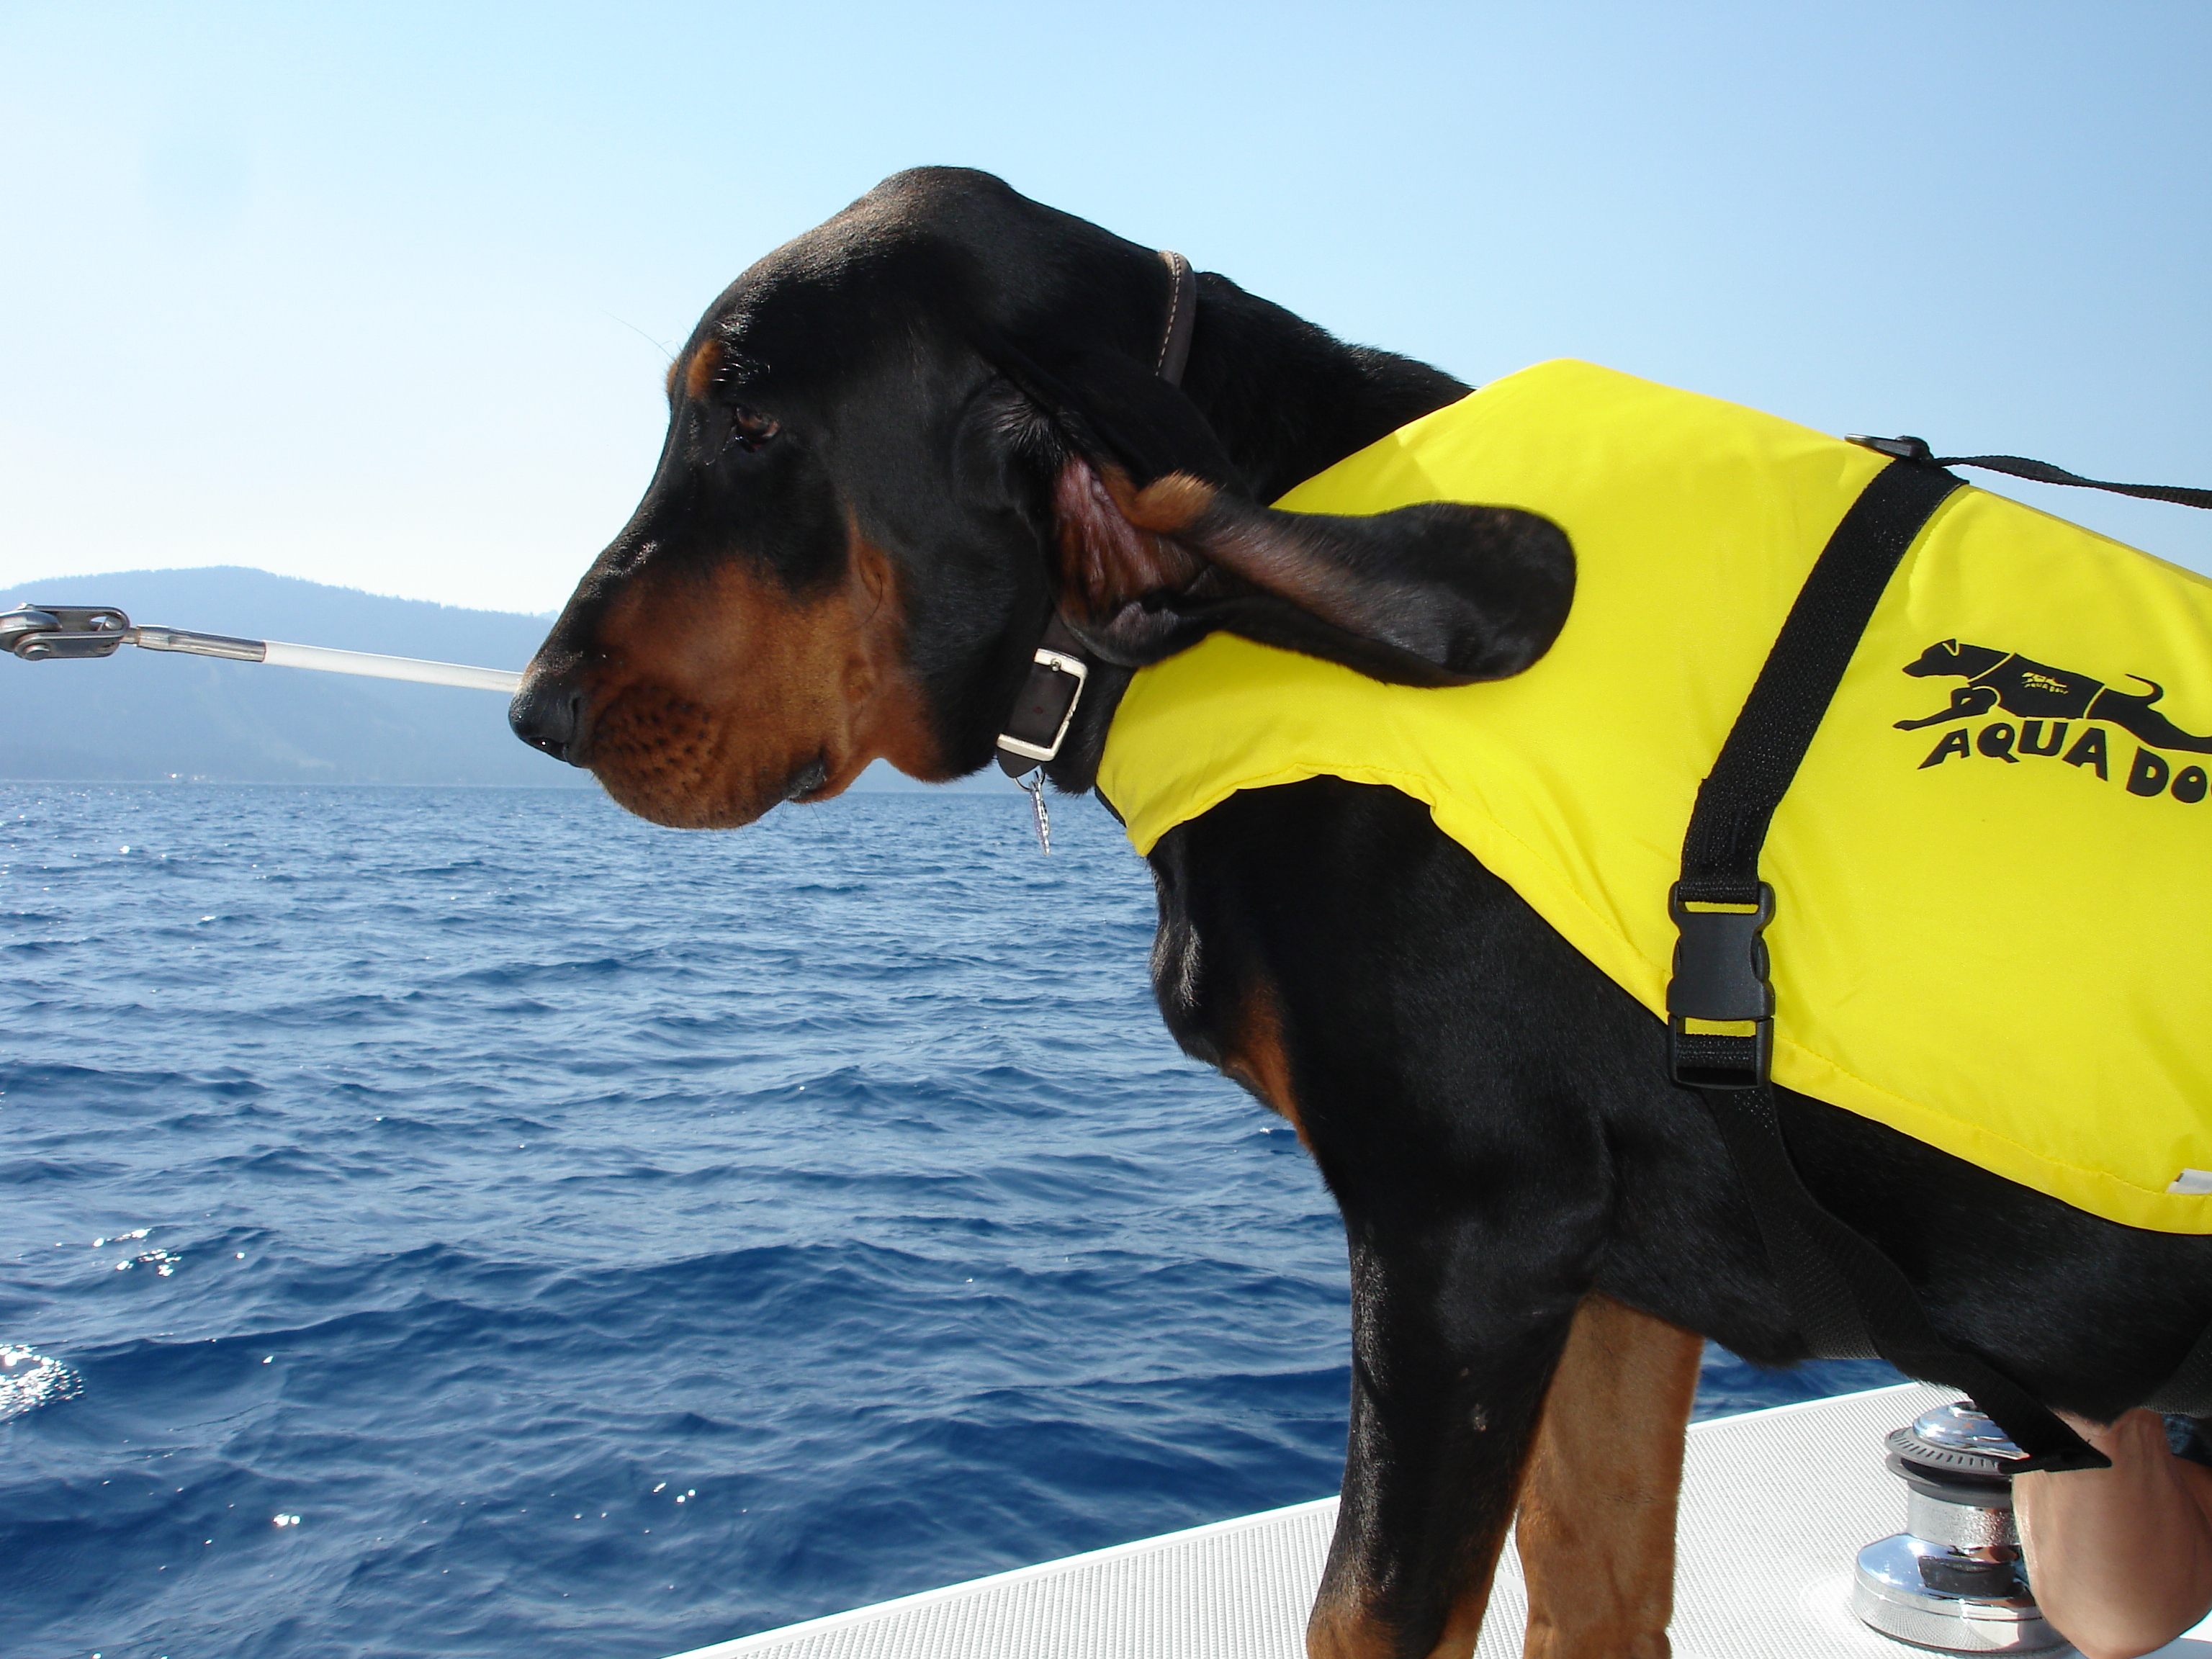 Black and Tan Coonhound rescuer wallpaper